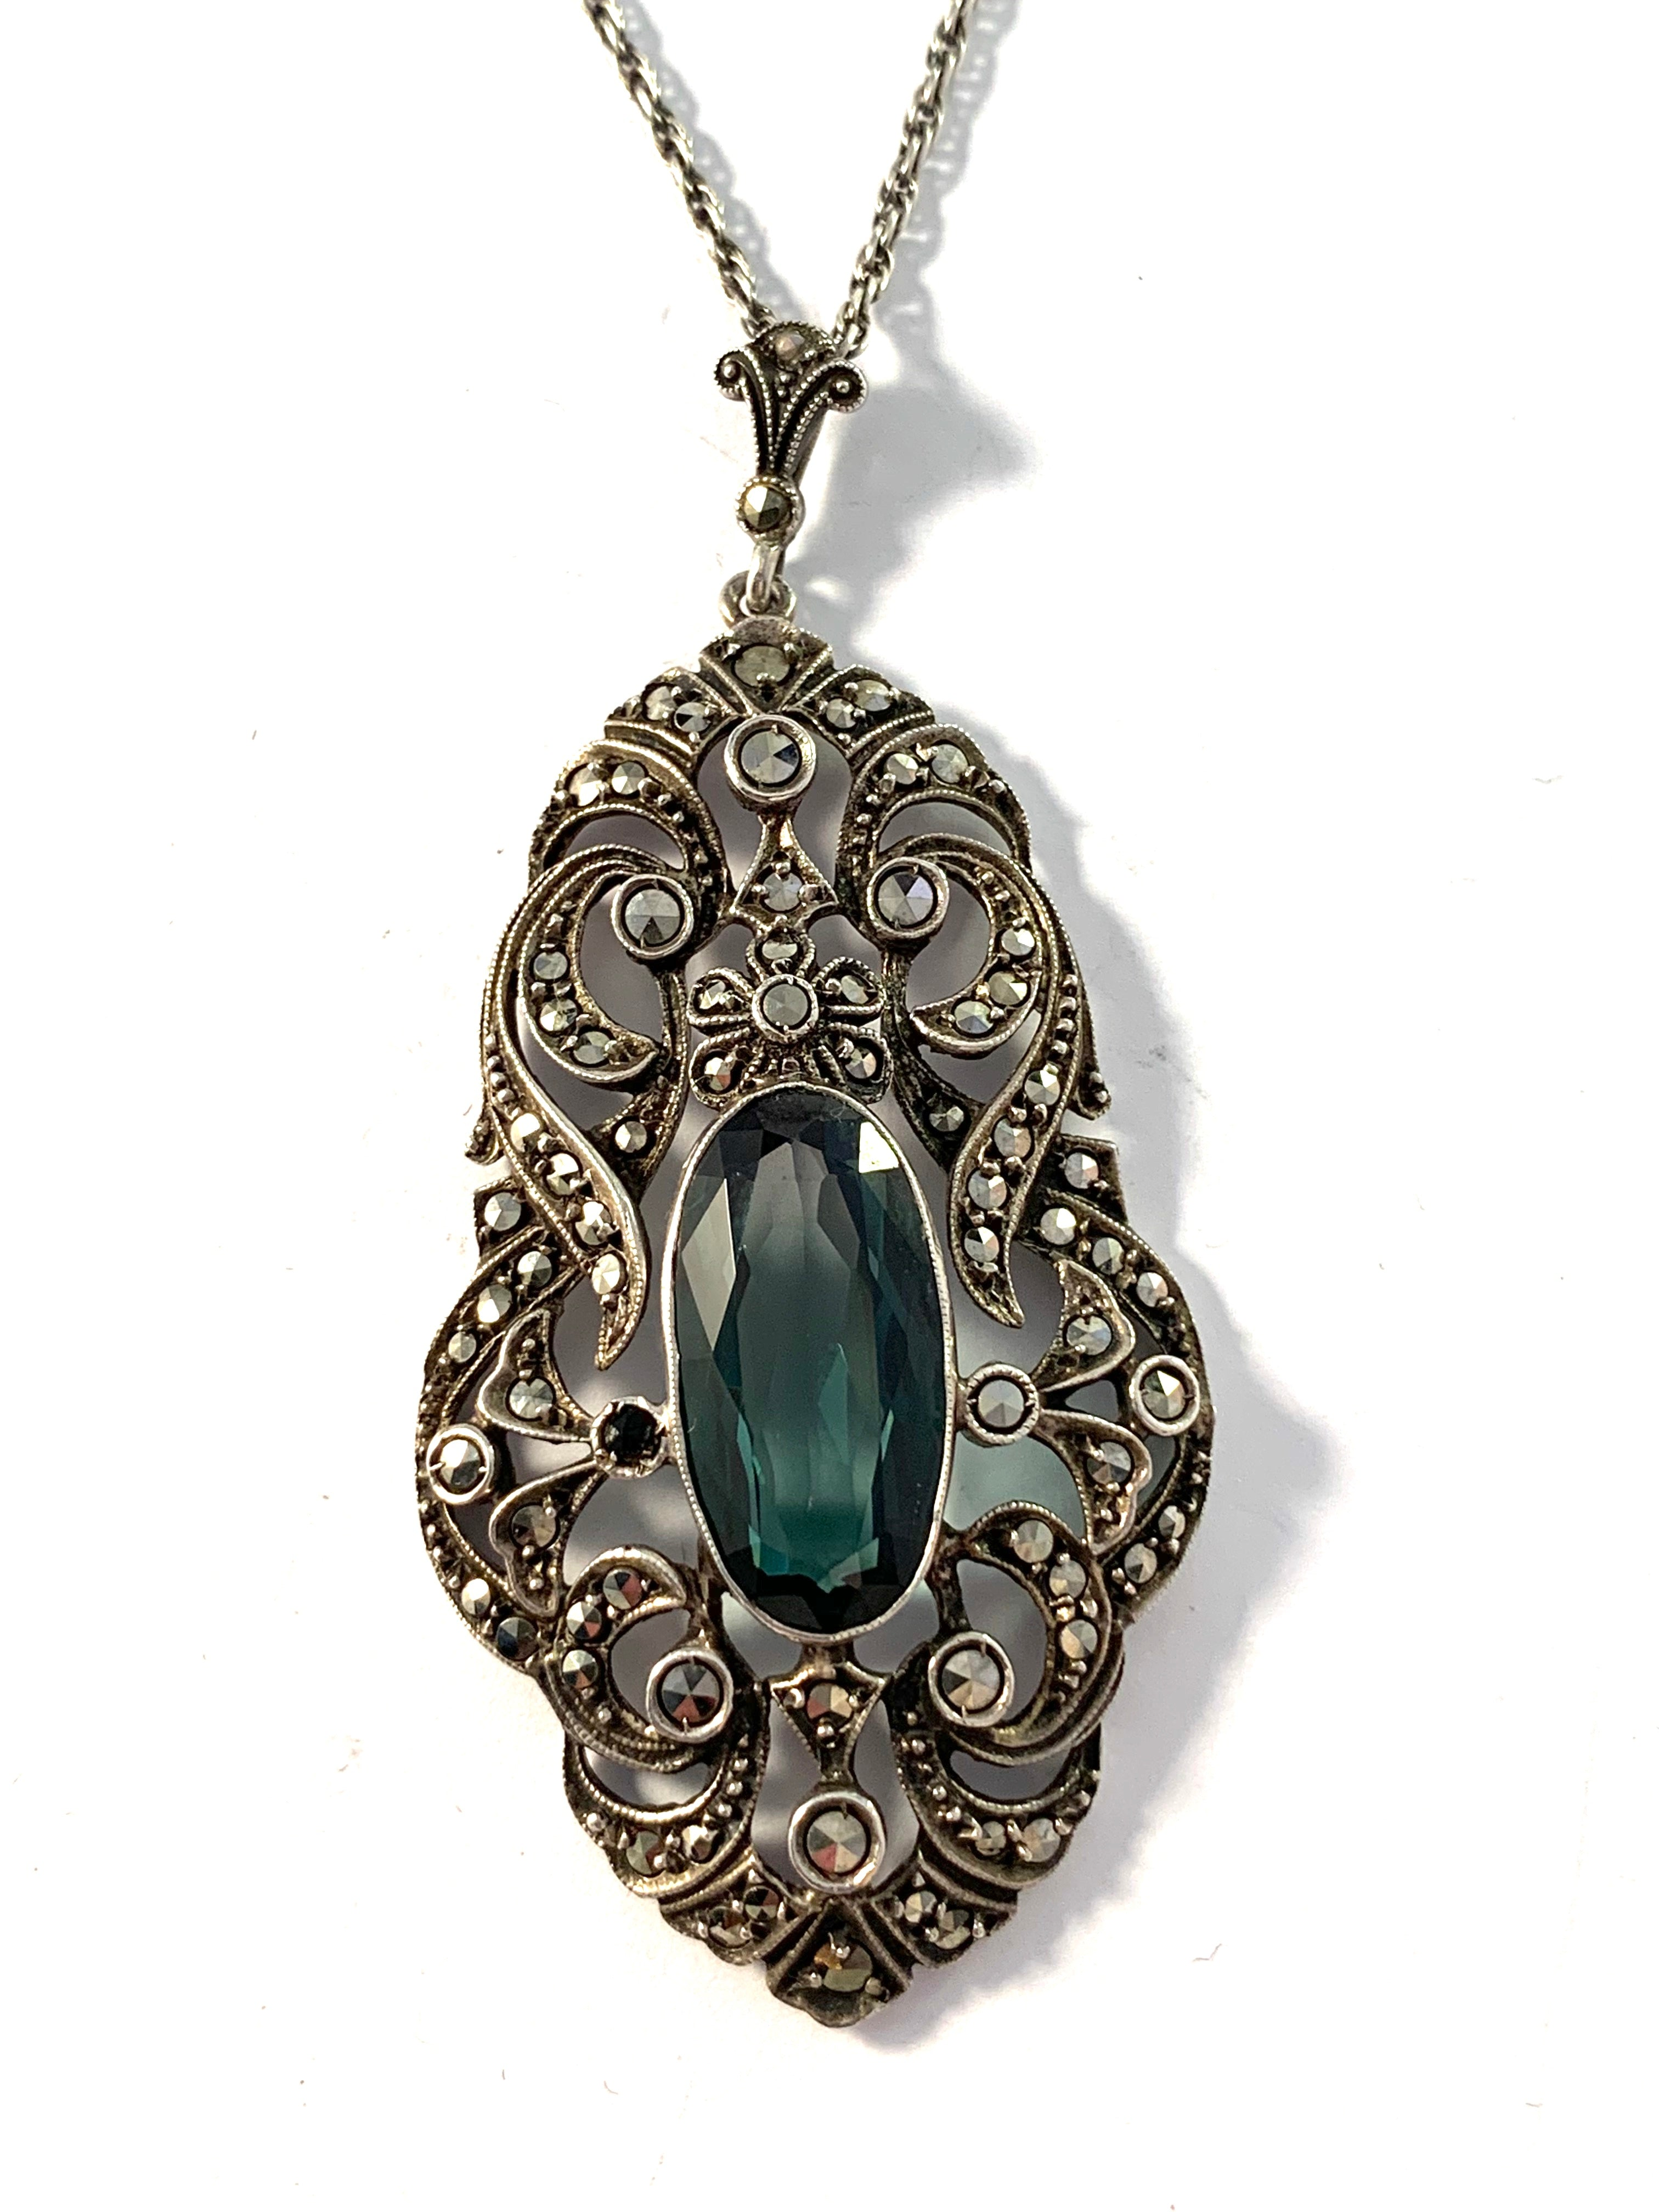 Germany / Austria early 1900s Solid Silver Marcasite Dark Forest Green Paste Large Pendant Necklace